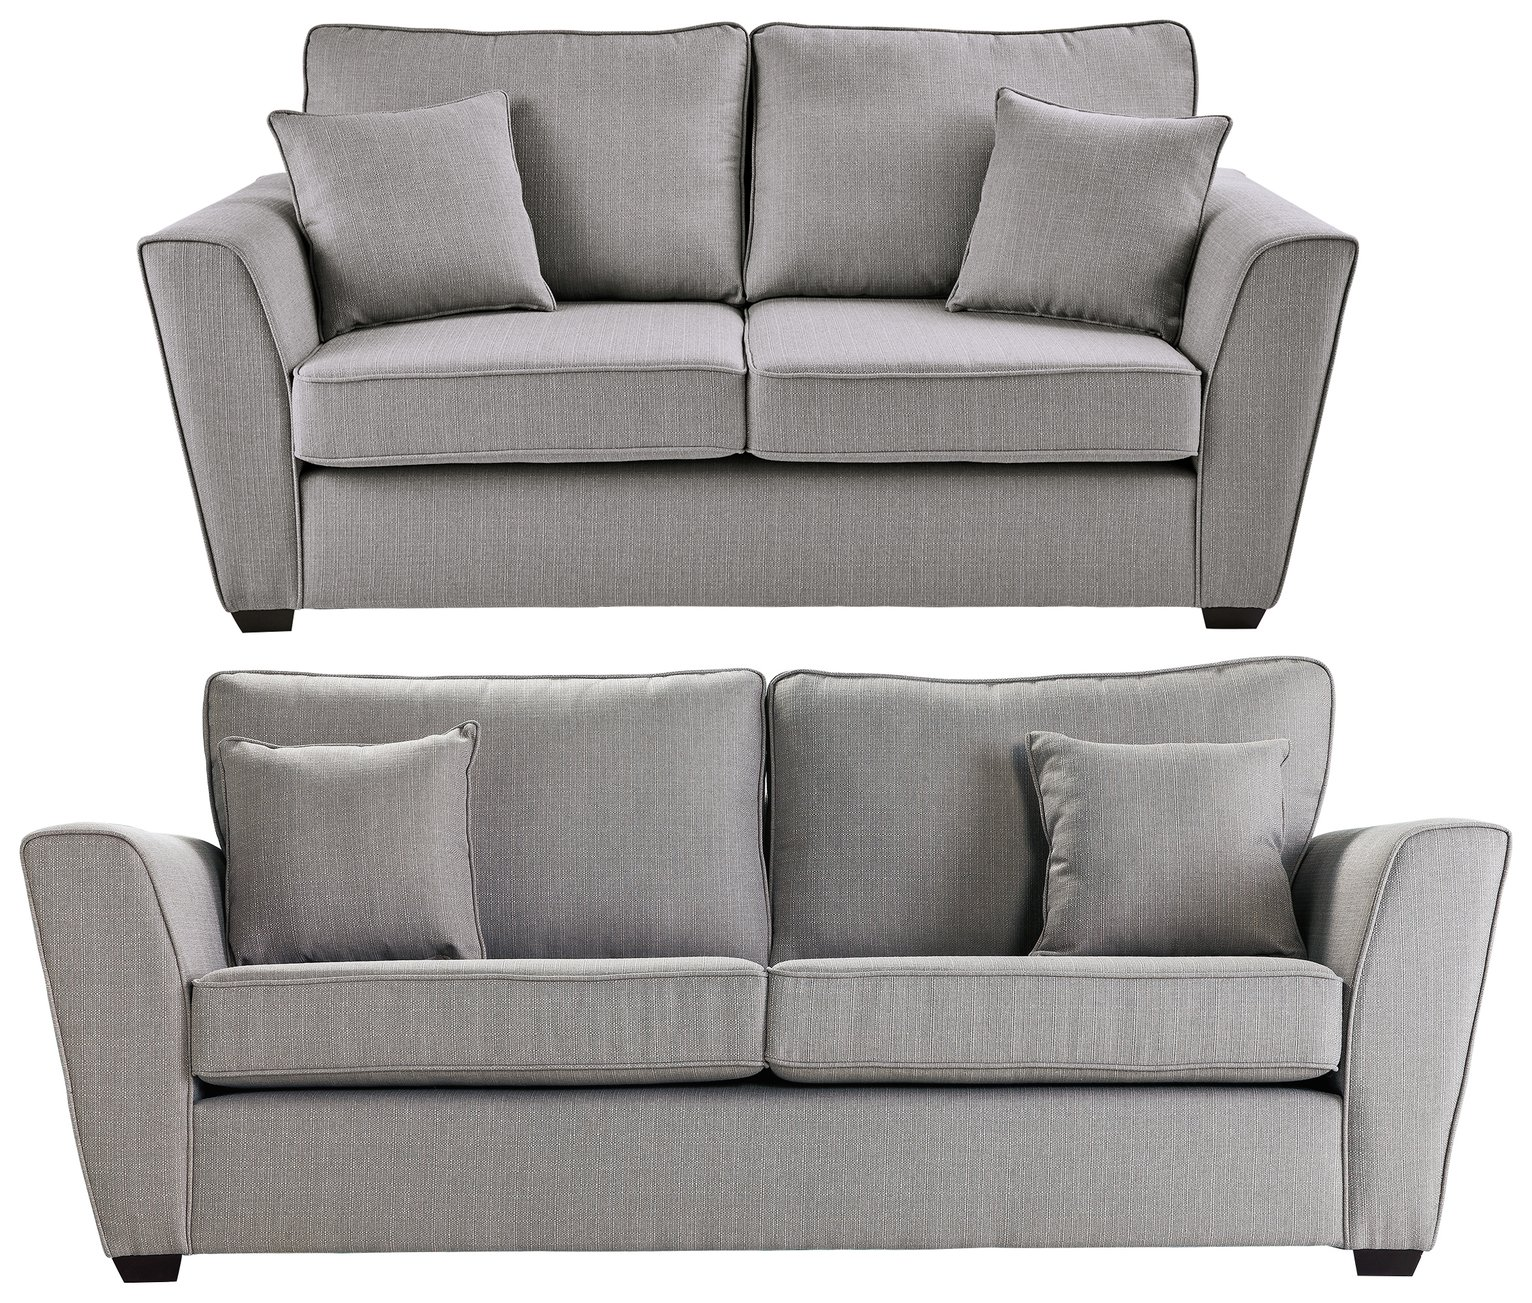 Collection Renley 2 Seater and 3 Seater Sofa - Light Grey